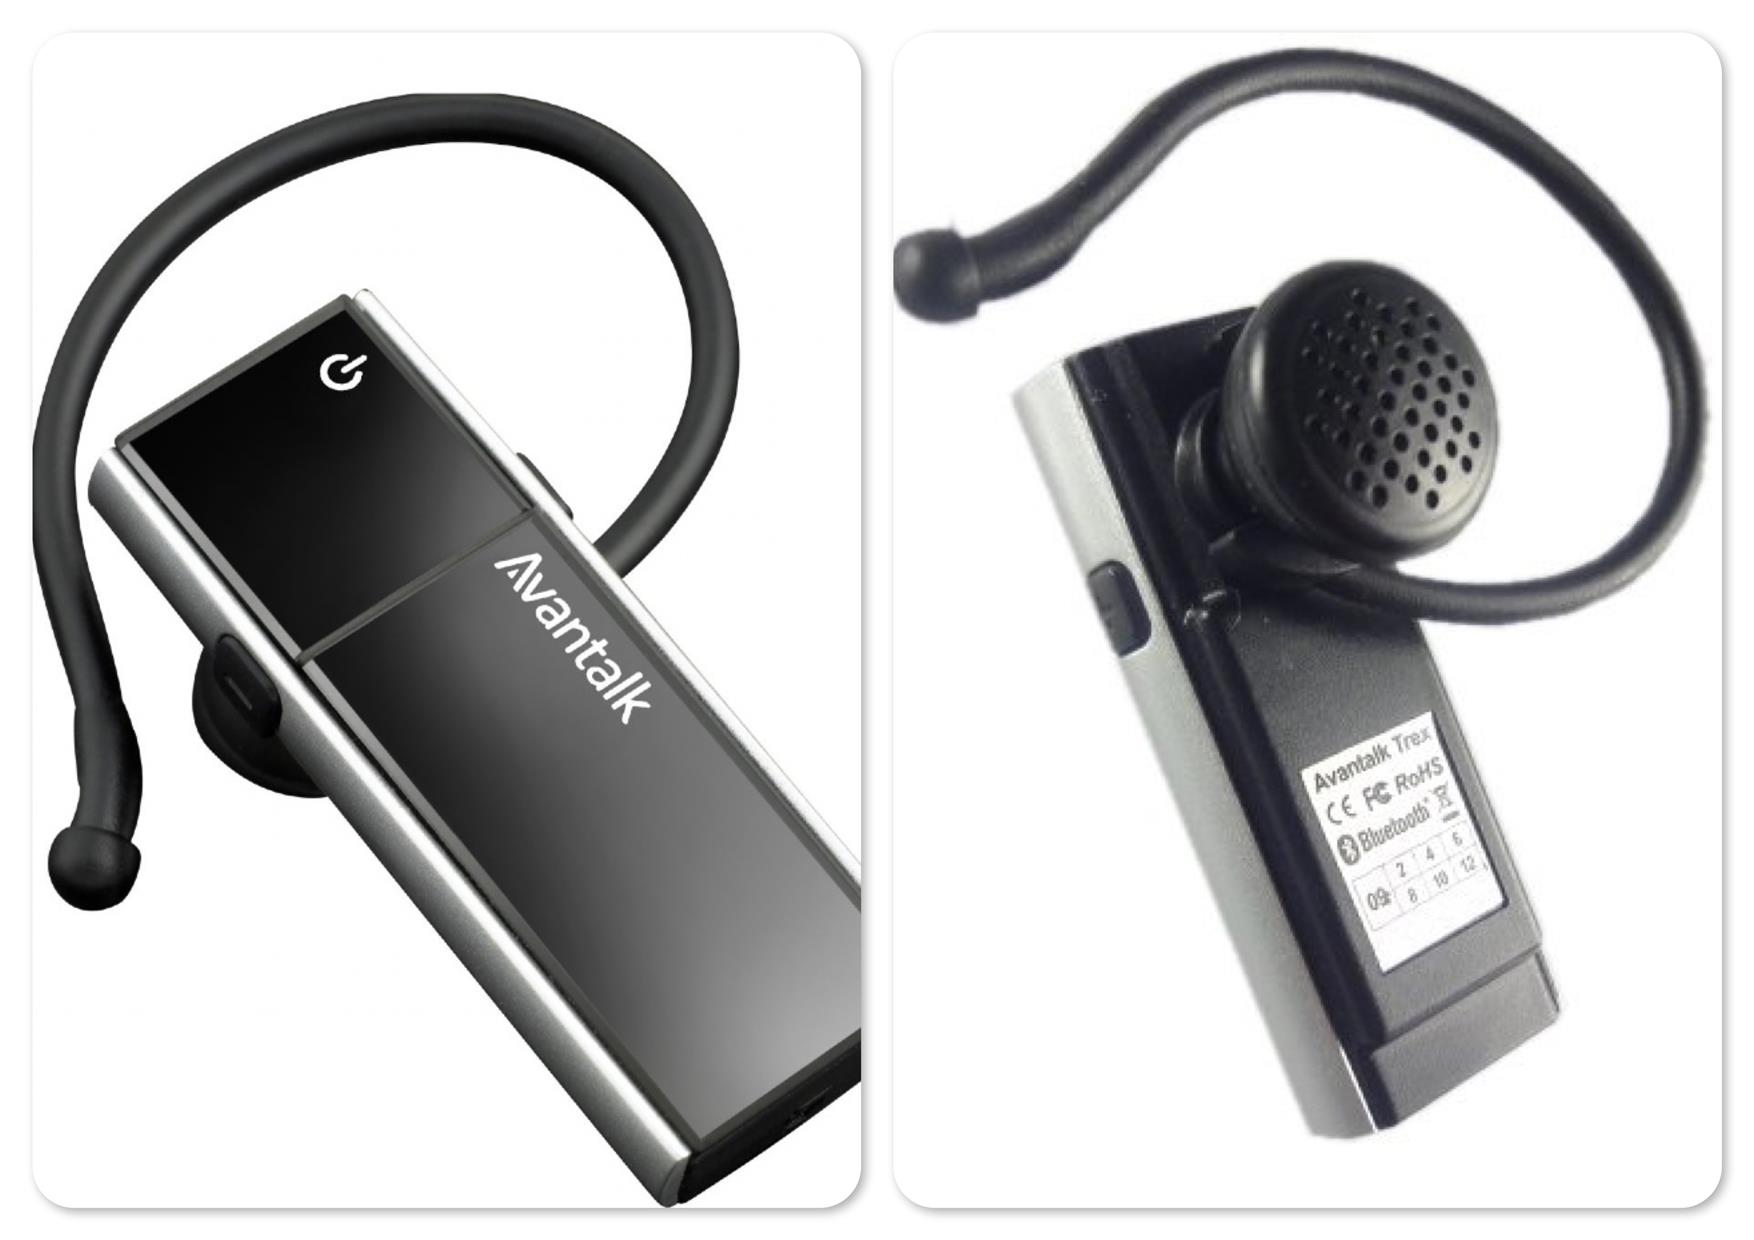 Bdotcom = Avantree Trexduo Mono Bluetooth Headset